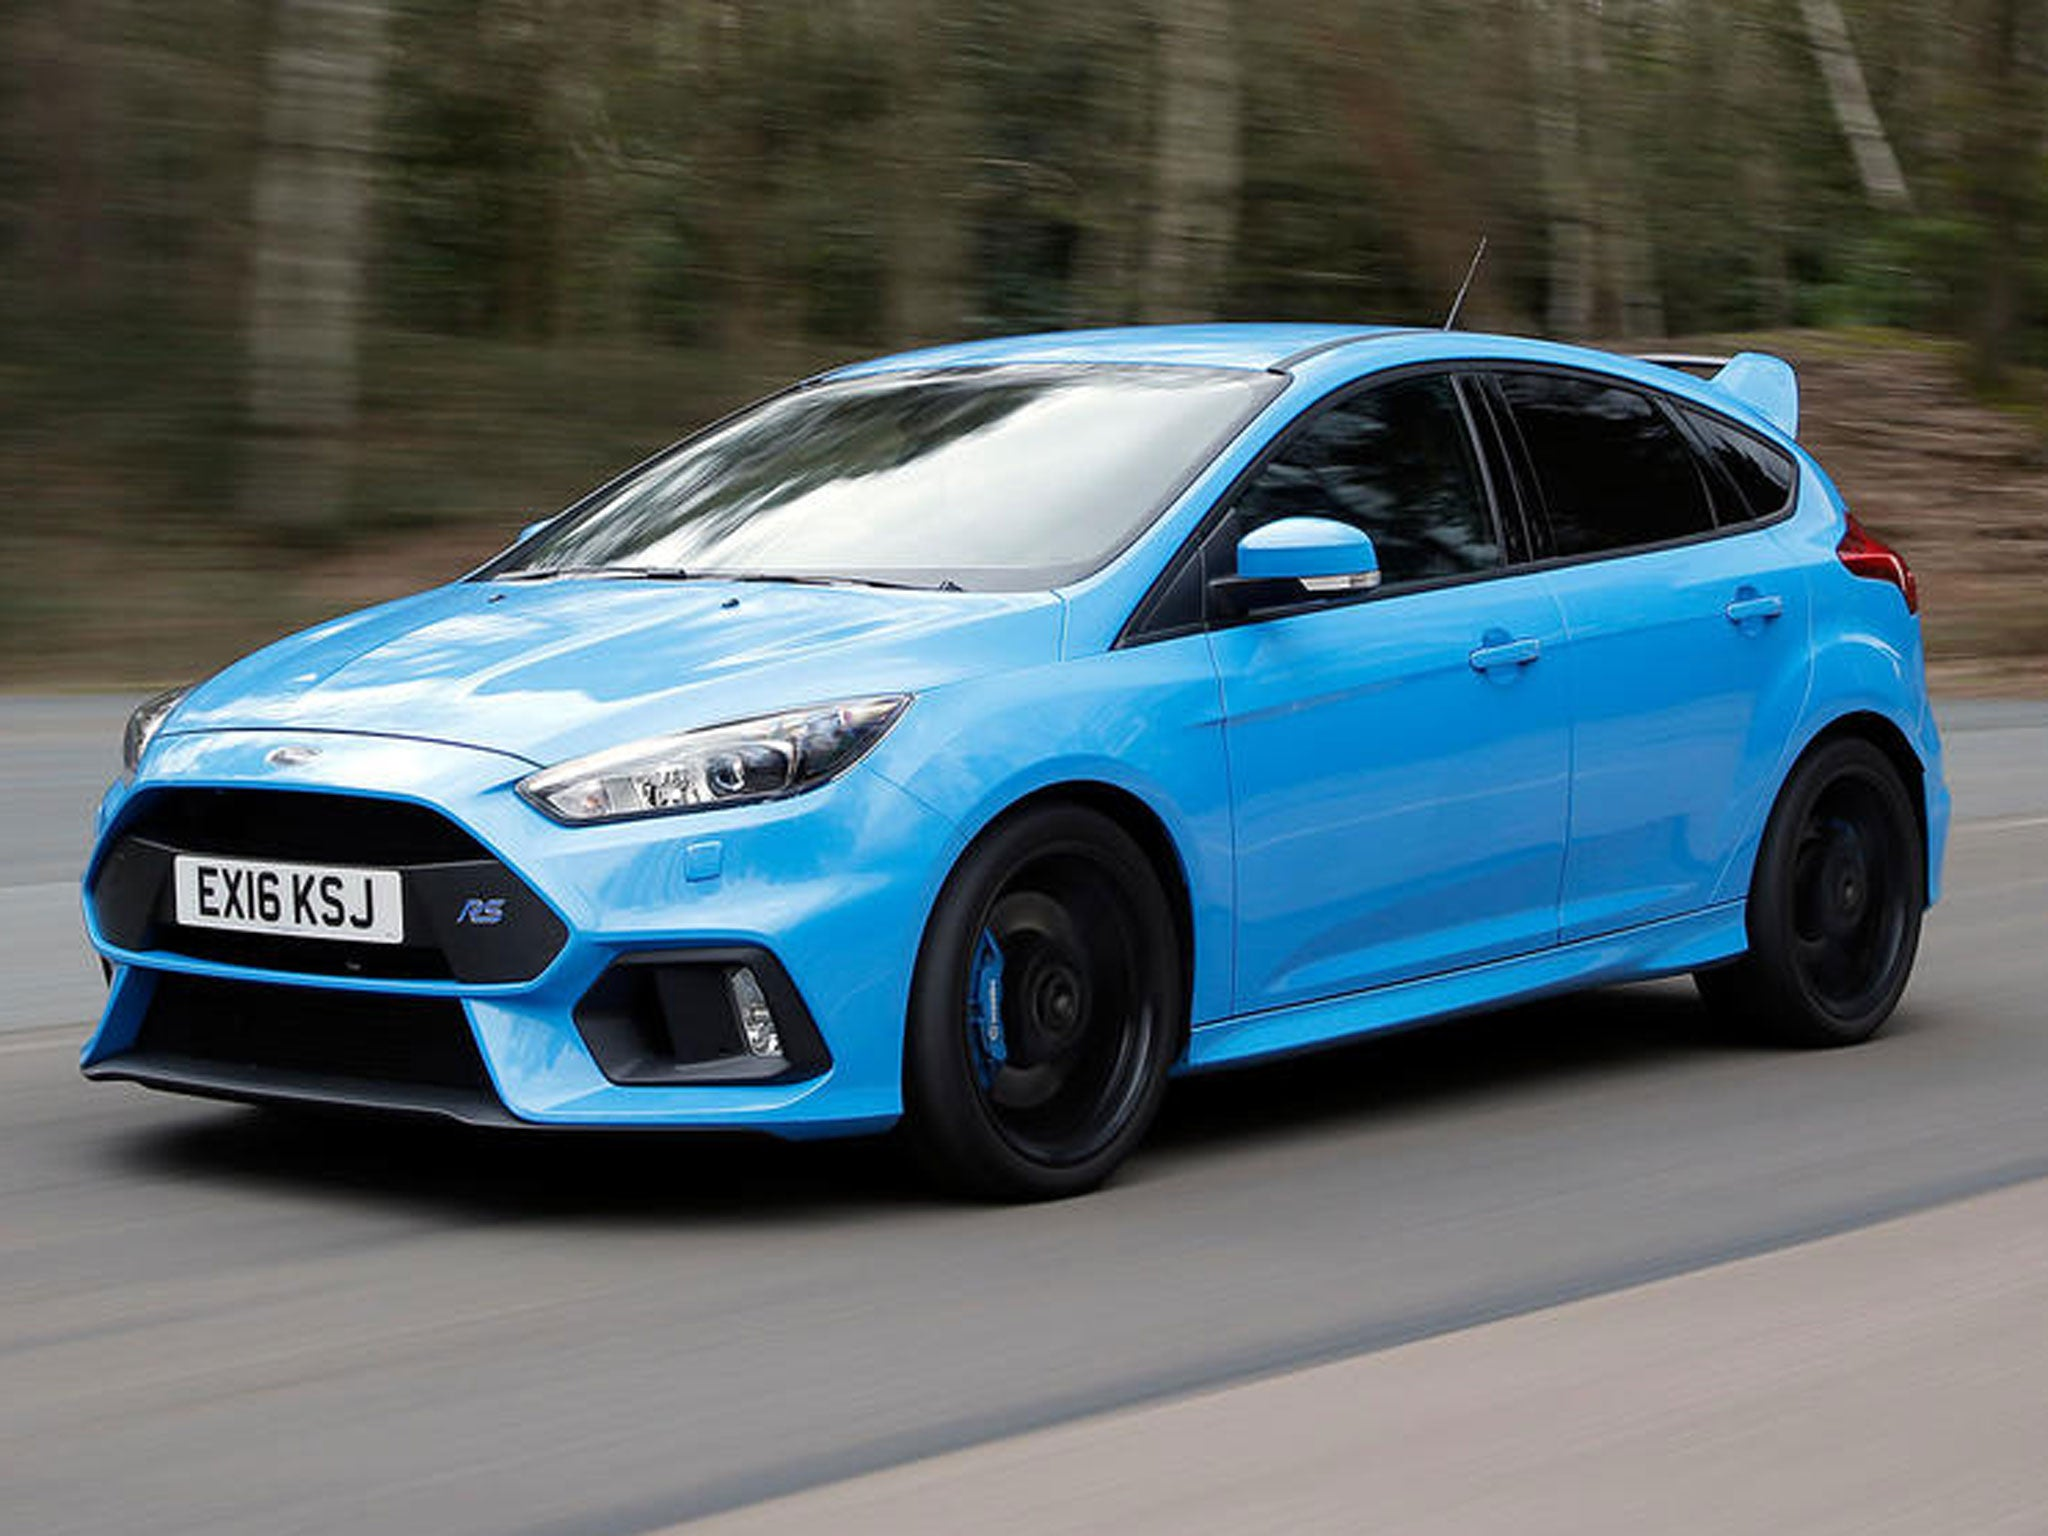 ford focus rs car review on road and on track with super hatch of the century road tests. Black Bedroom Furniture Sets. Home Design Ideas